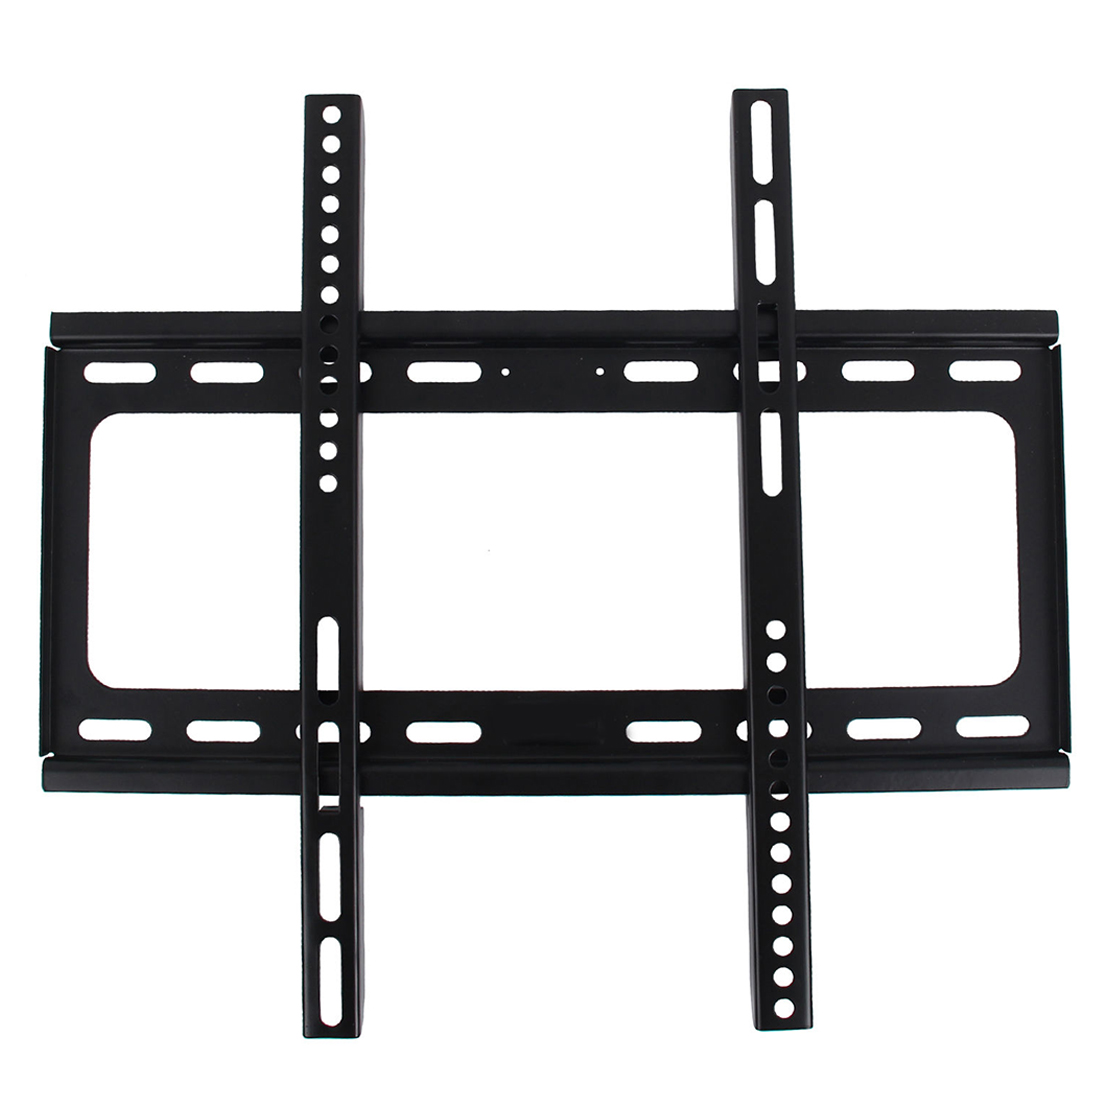 Bathroom Shelves Bathroom Hardware Flat Slim Tv Wall Mount Bracket 23 28 30 32 40 42 48 50 55 Inch Led Lcd Plasma 100% High Quality Materials